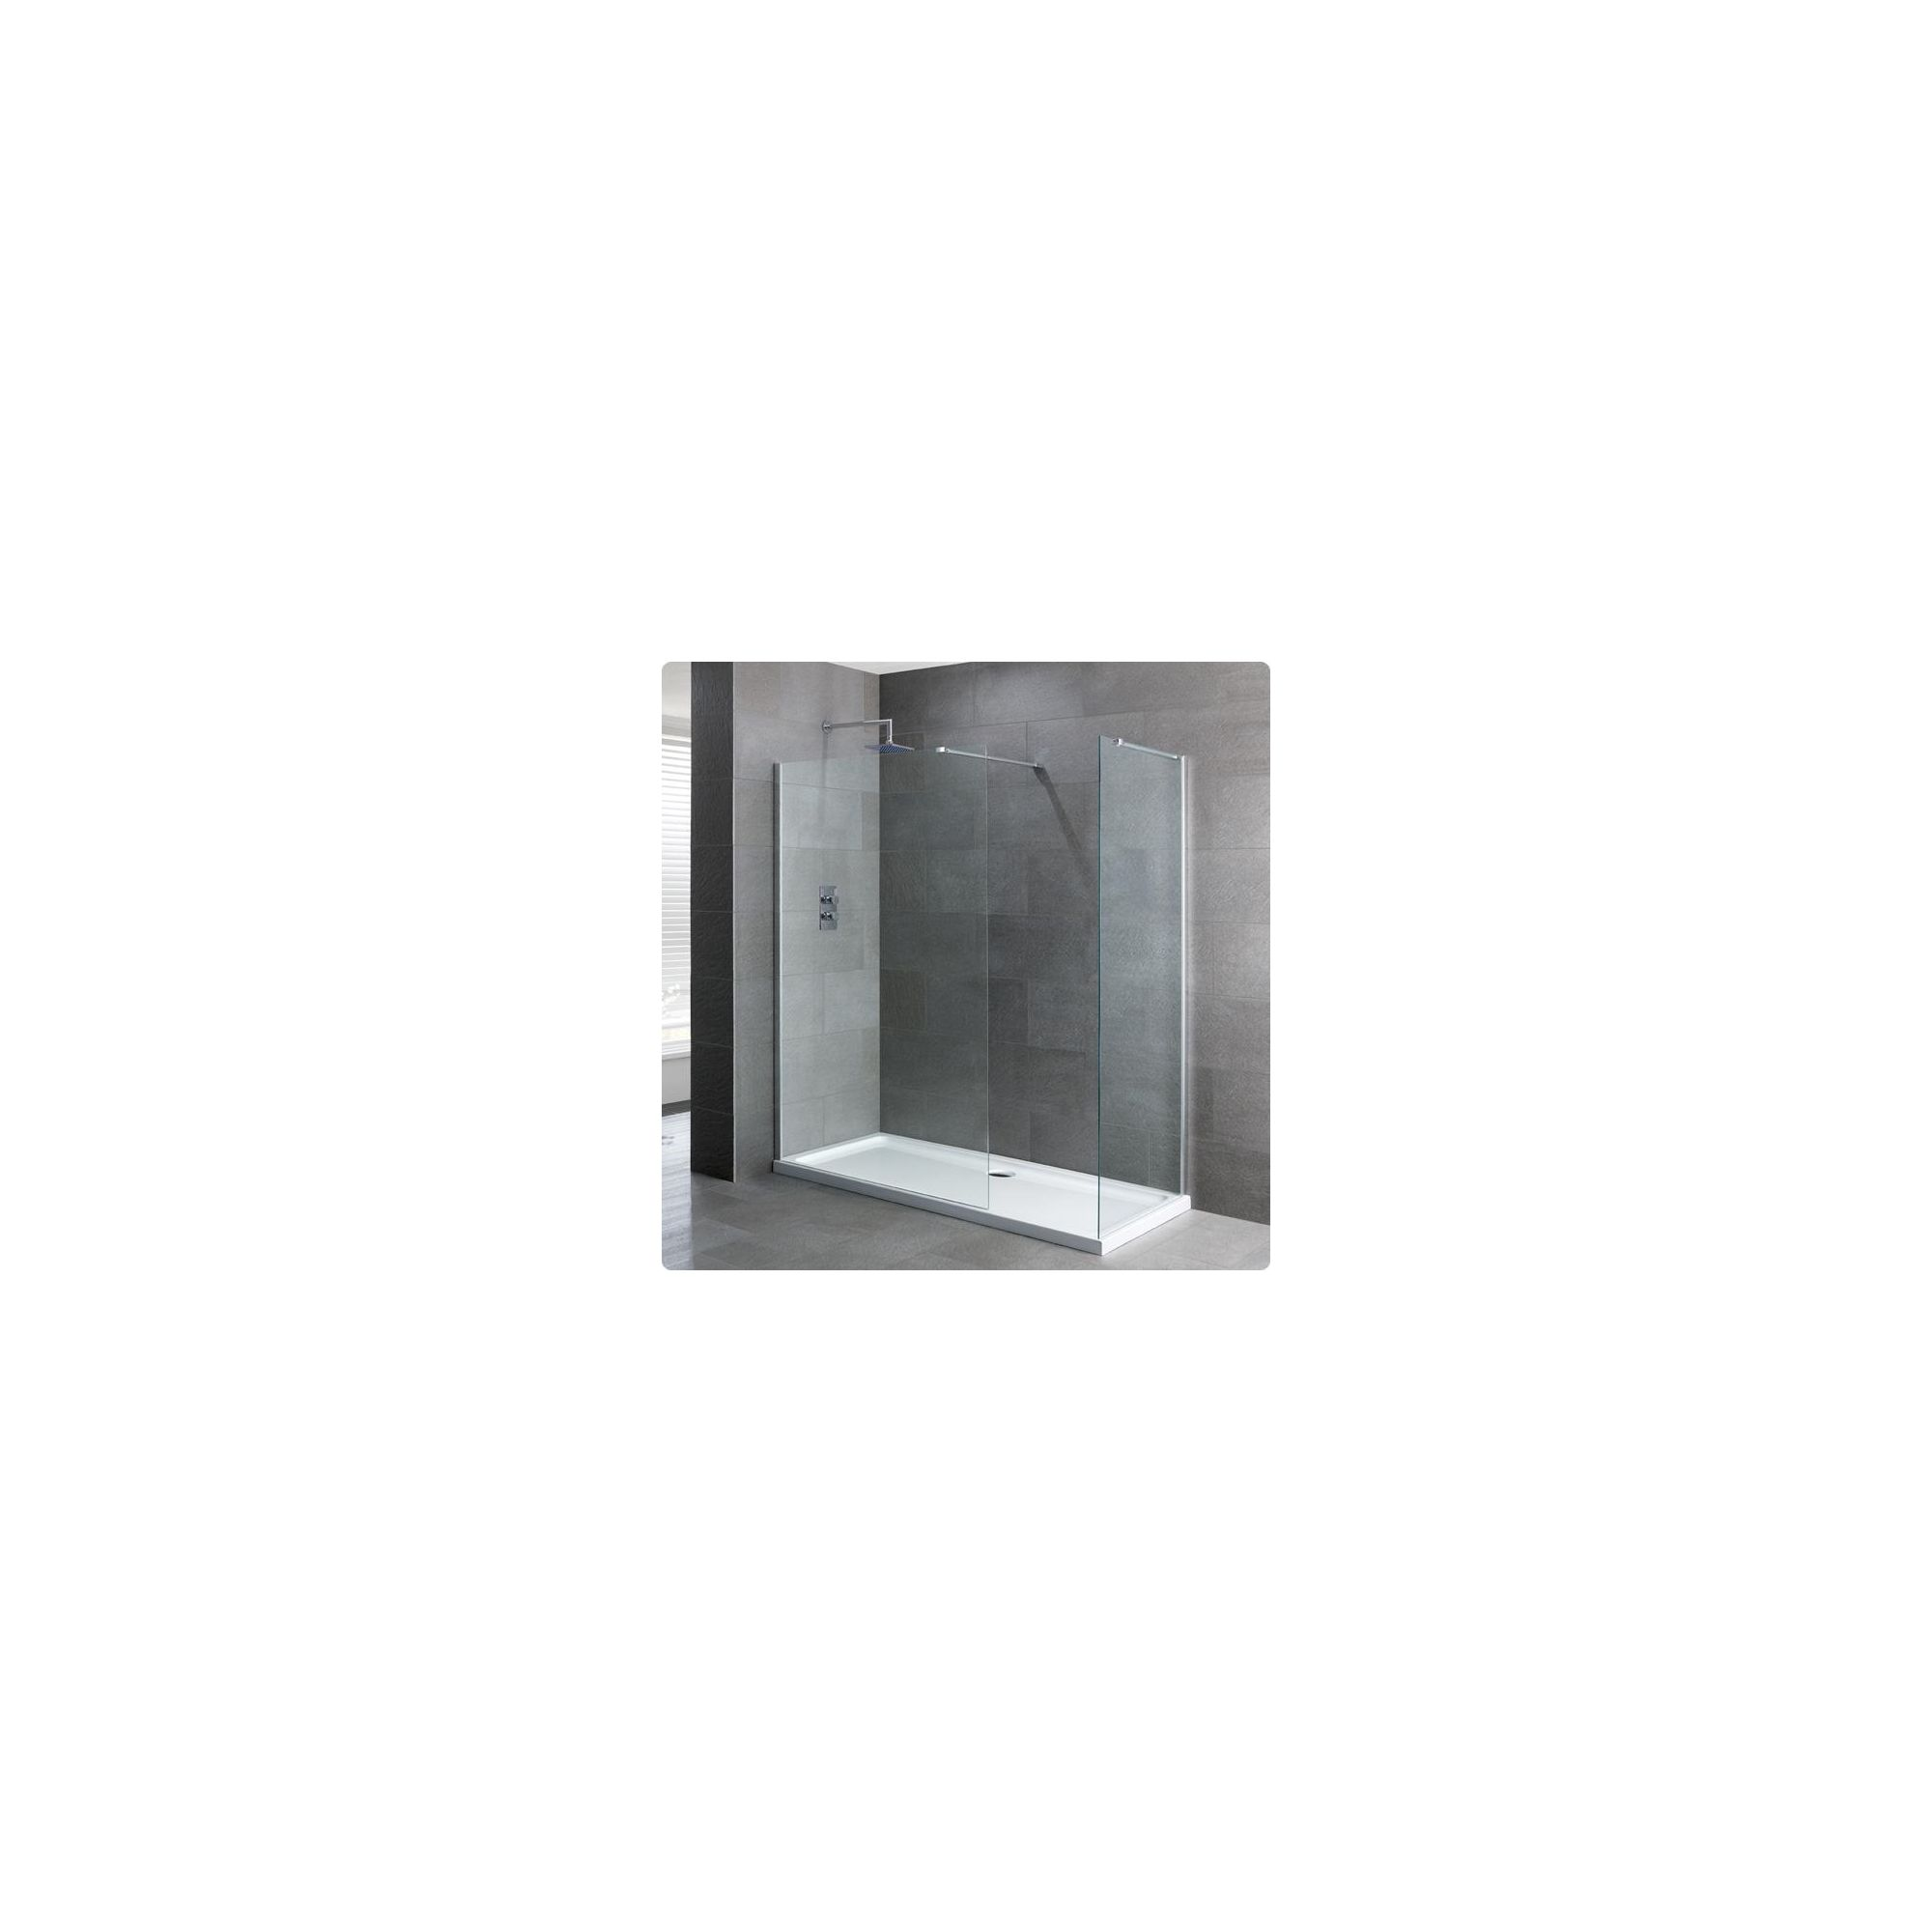 Duchy Select Silver Walk-In Shower Enclosure 1700mm x 800mm, Standard Tray, 6mm Glass at Tesco Direct